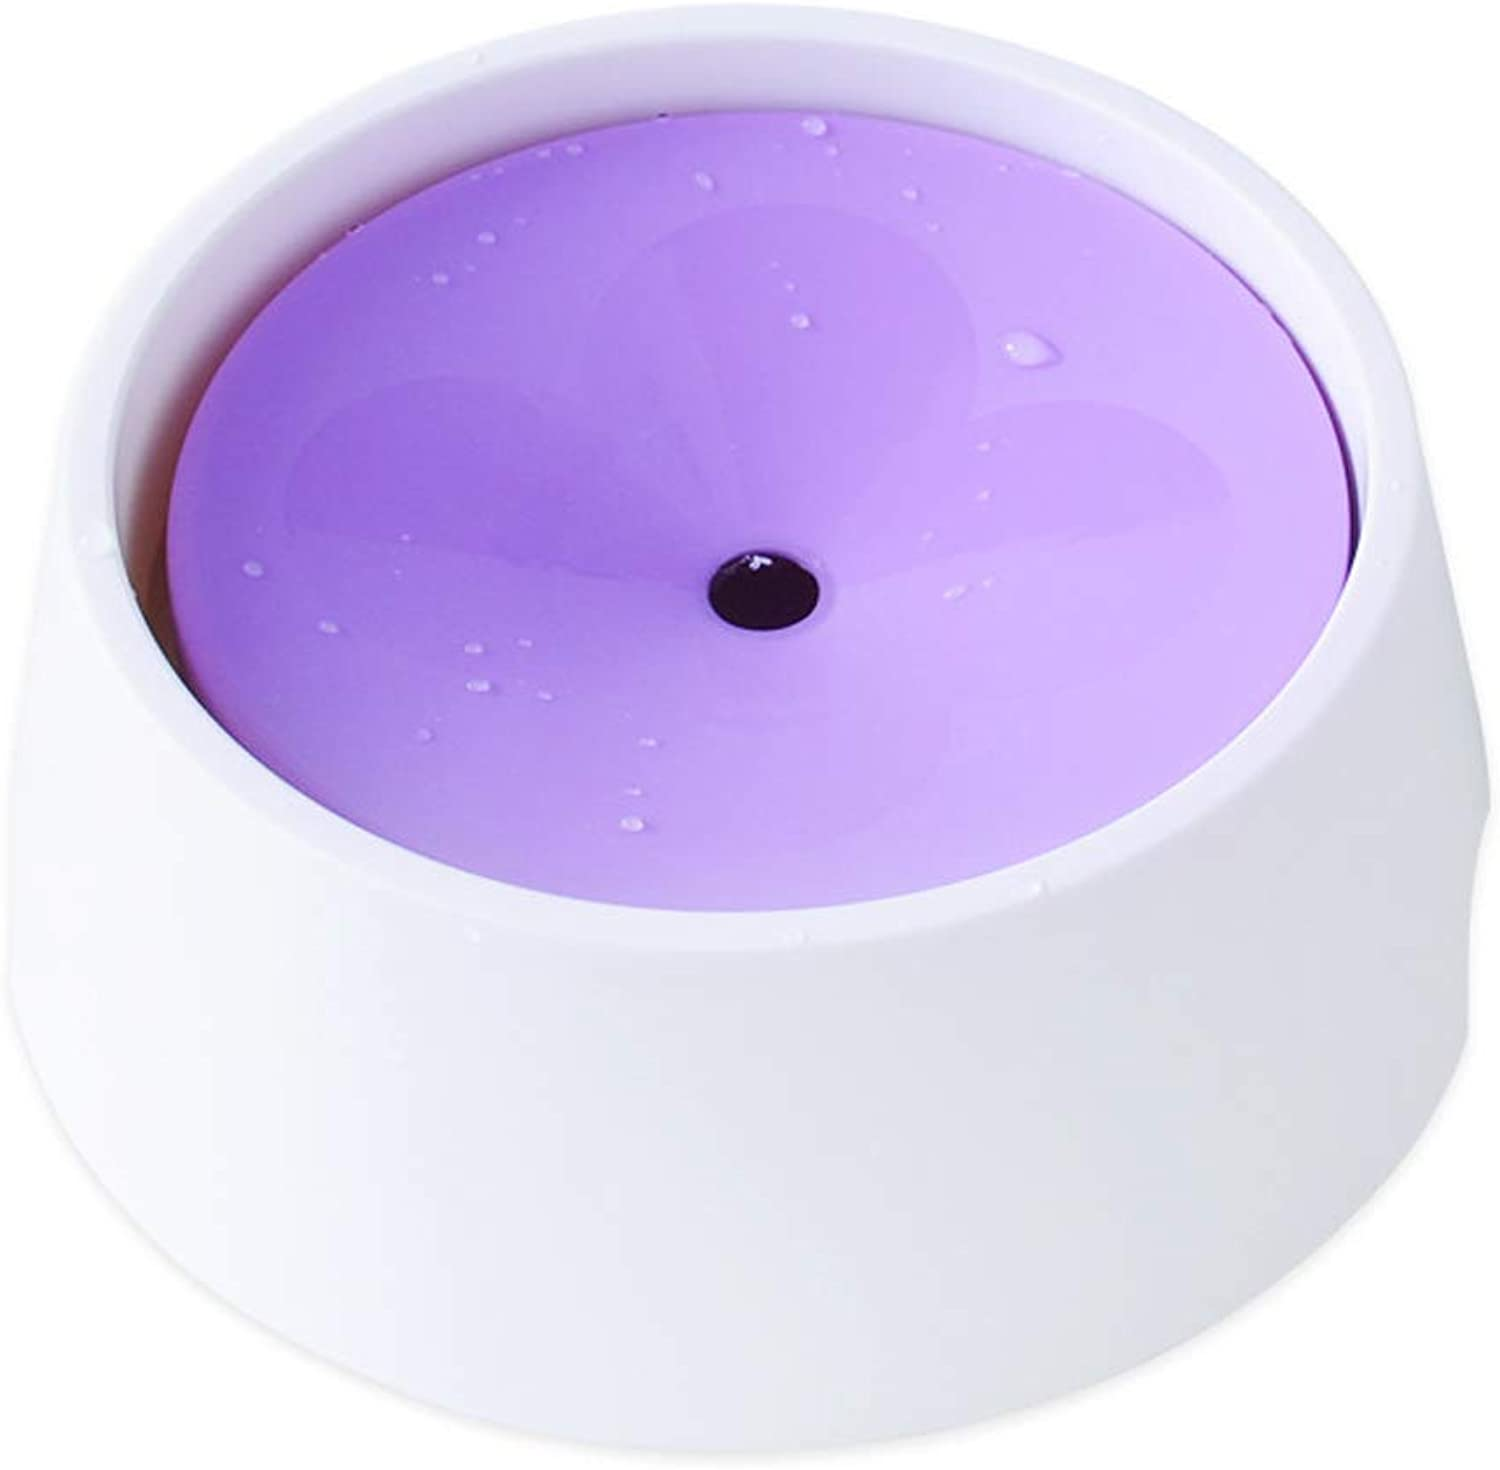 Dog Bowl Water and Food with Floating Disk Pet Bowl, Slow Feeder AntiChoking AntiOverflow Bowl,Skid and AntiChoking Dripless Bowl,for Small Or Large Breeds,Purple